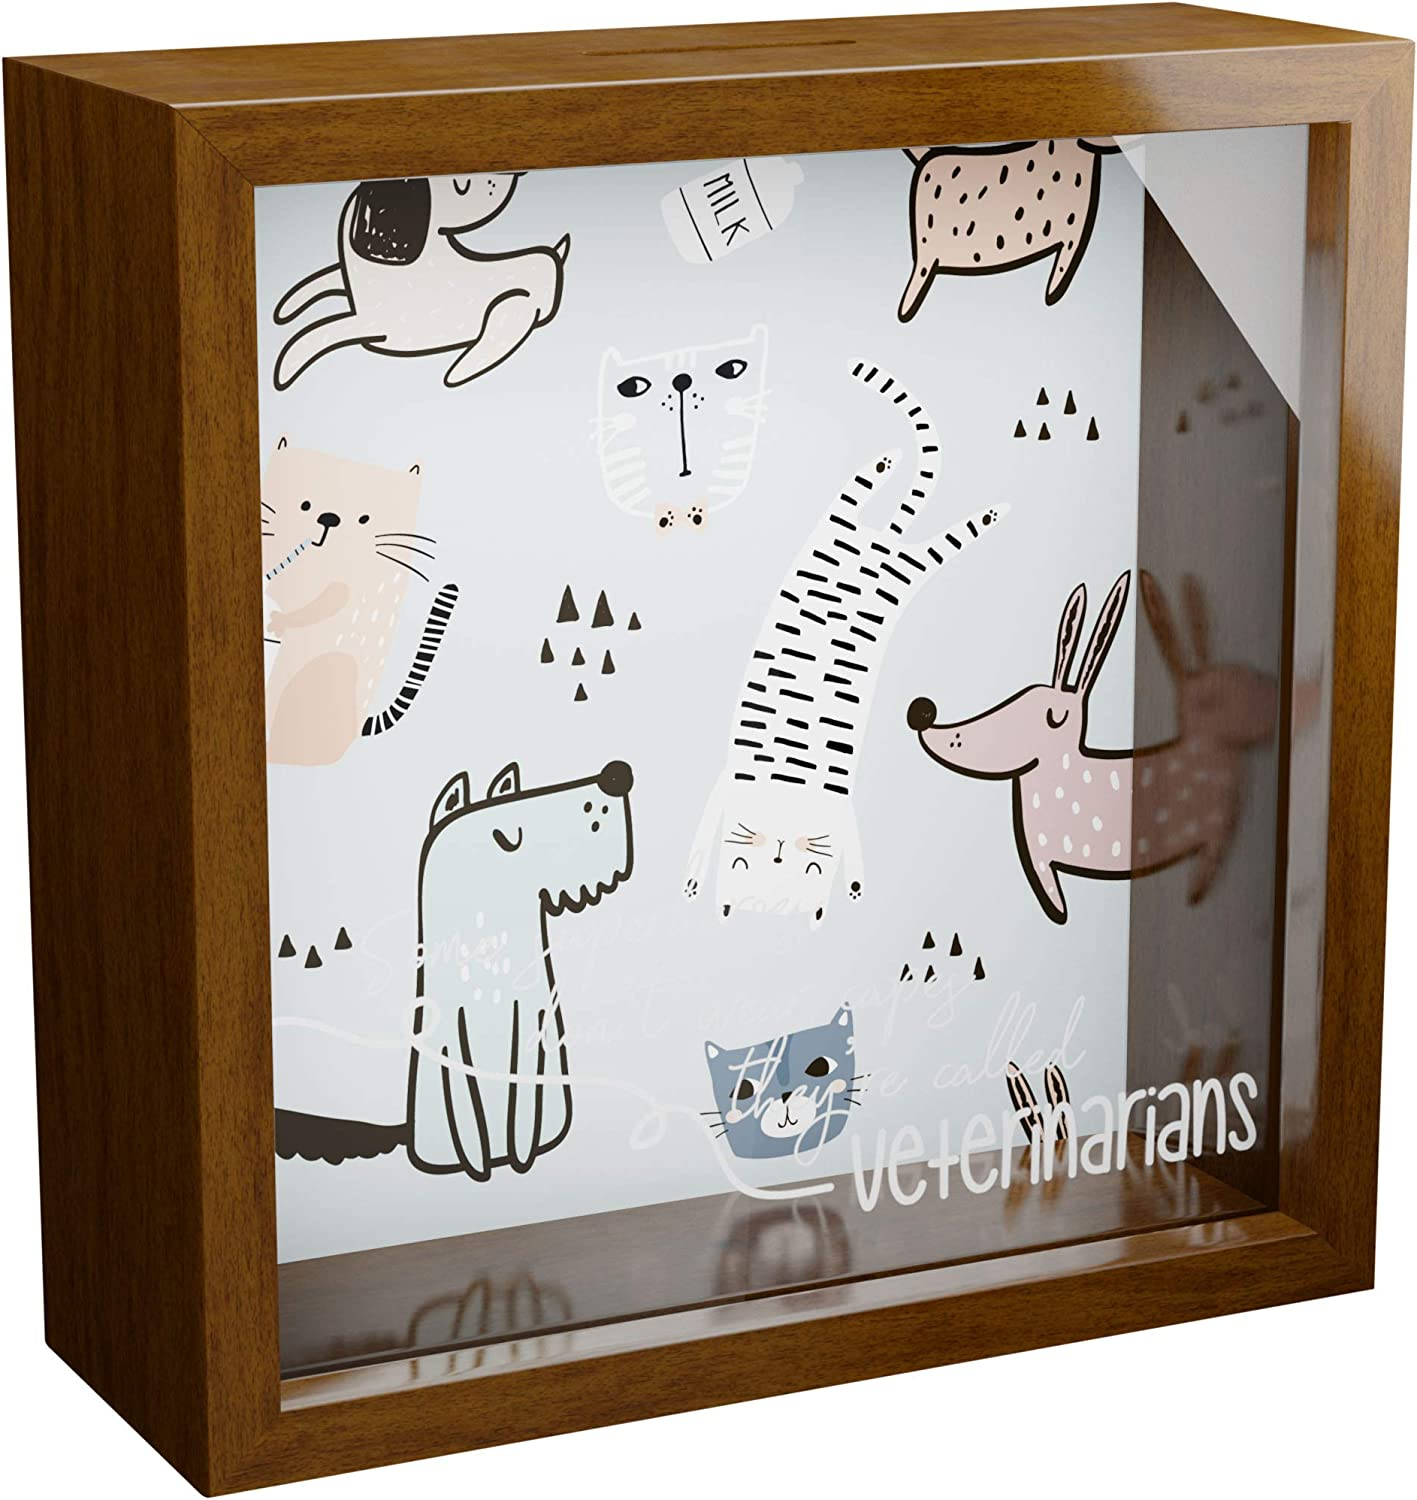 Gift for Veterinarian   6x6x2 Memory Shadow Box   Glass Fronted Keepsake Box   Veterinary Wall Art   Veterinary Technician Gift  Ideal Wall for Home and Office Decor   Vet Tech Gifts for Women & Man